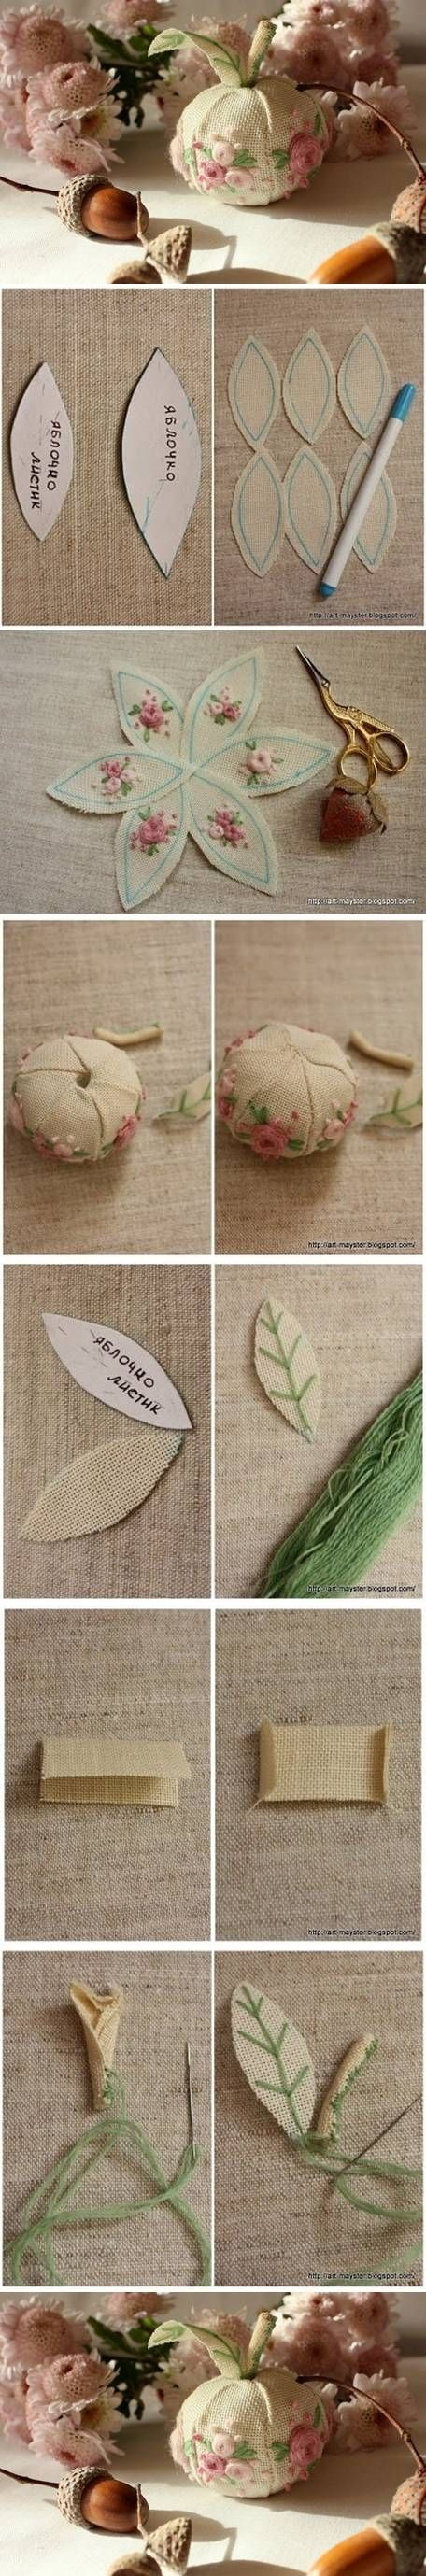 DIY Fabric Apple Decor crafts crafty decor home ideas diy ideas DIY DIY home…